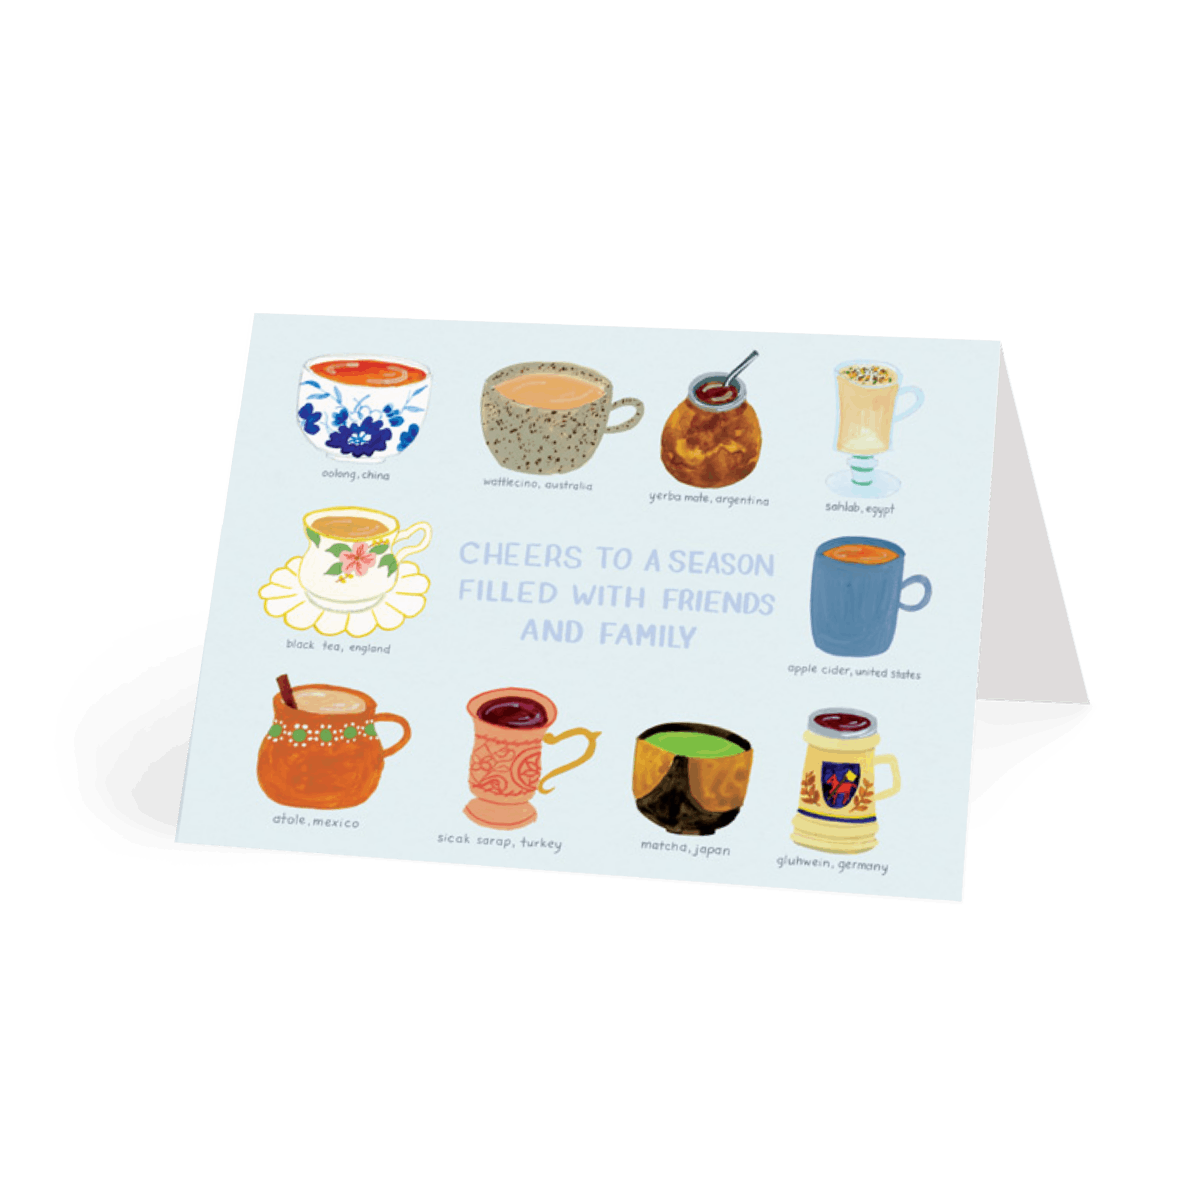 Https%3a%2f%2fwww.papier.com%2fproduct image%2f27538%2f14%2fhot drinks of the world 6867 front 1568233764.png?ixlib=rb 1.1